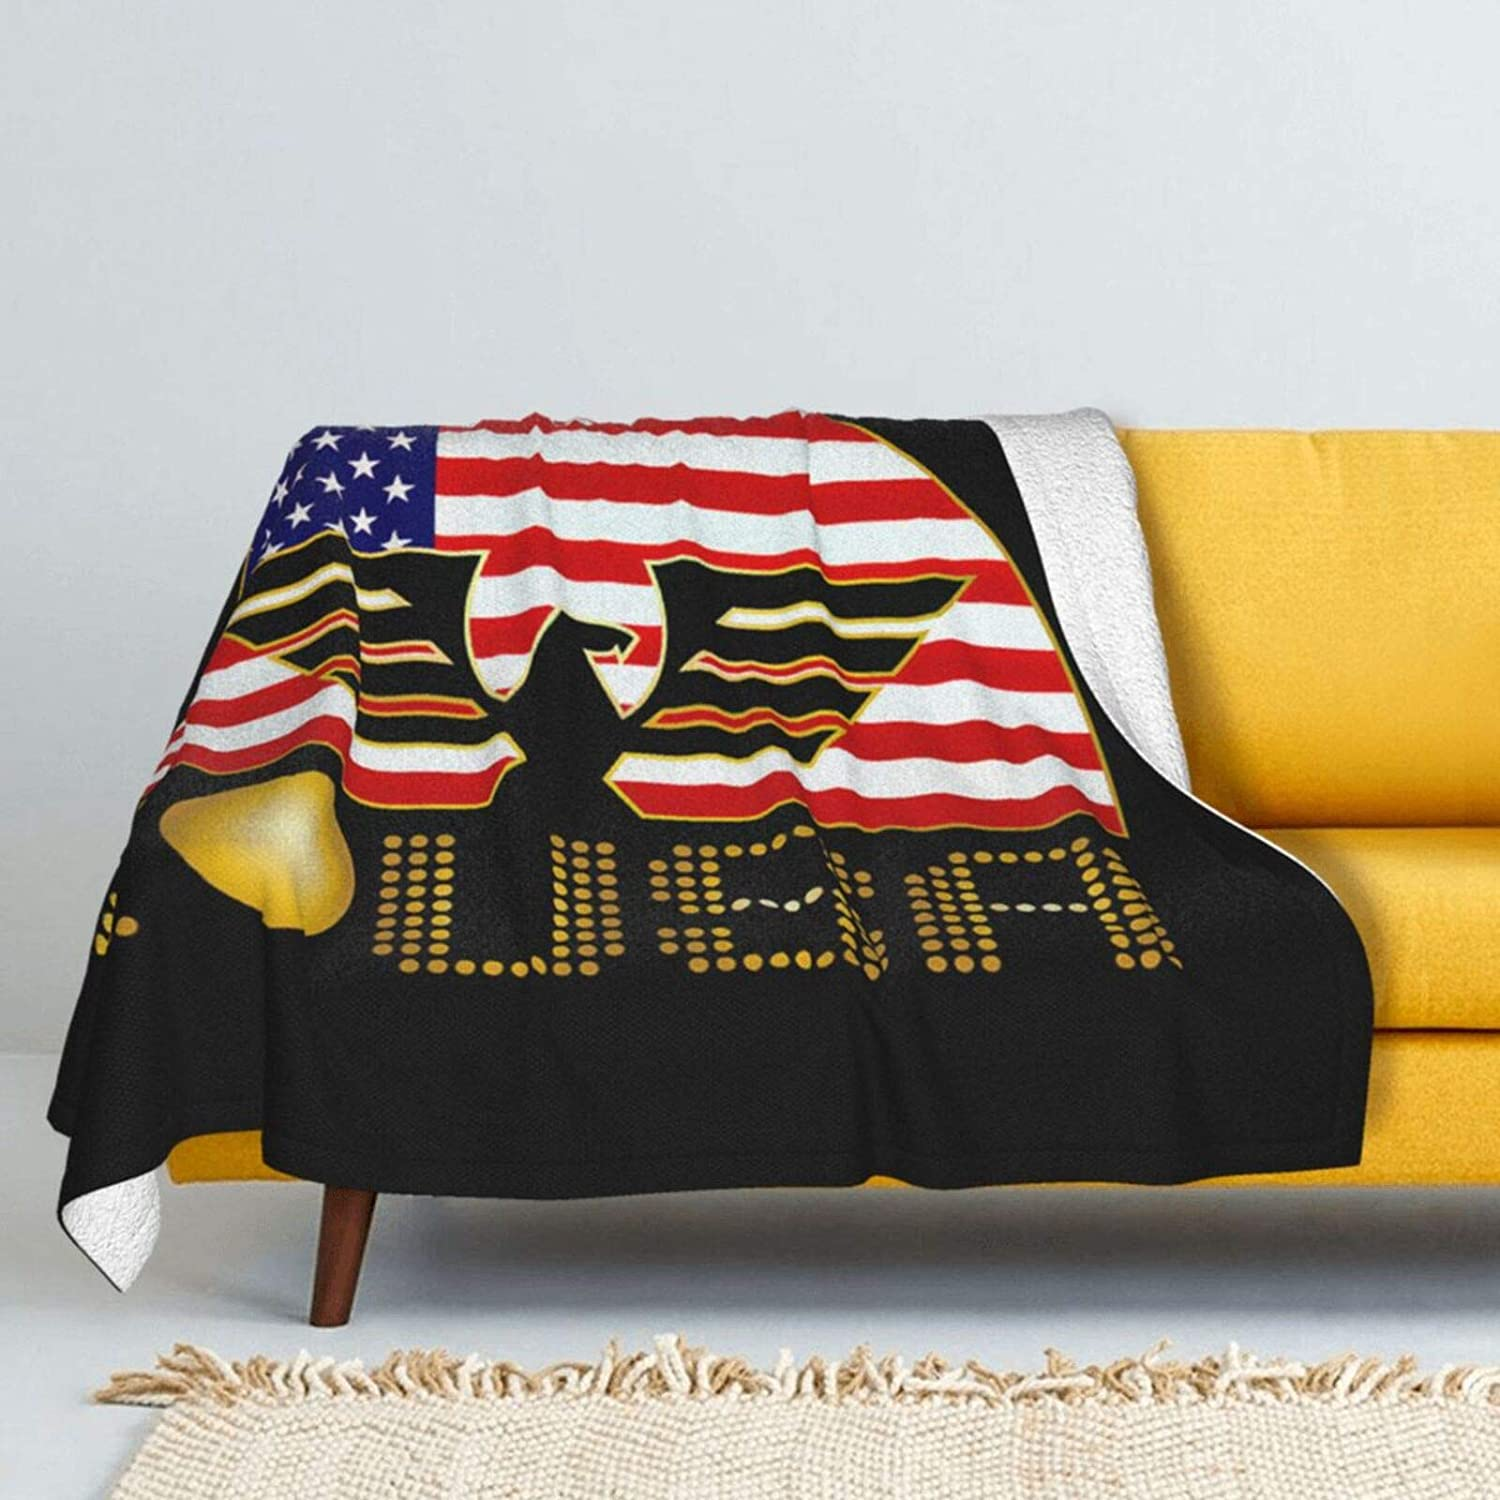 I Love USA Eagle Flag Lamb Under blast sales Double- Throw OFFicial shop Soft Blanket Super Wool